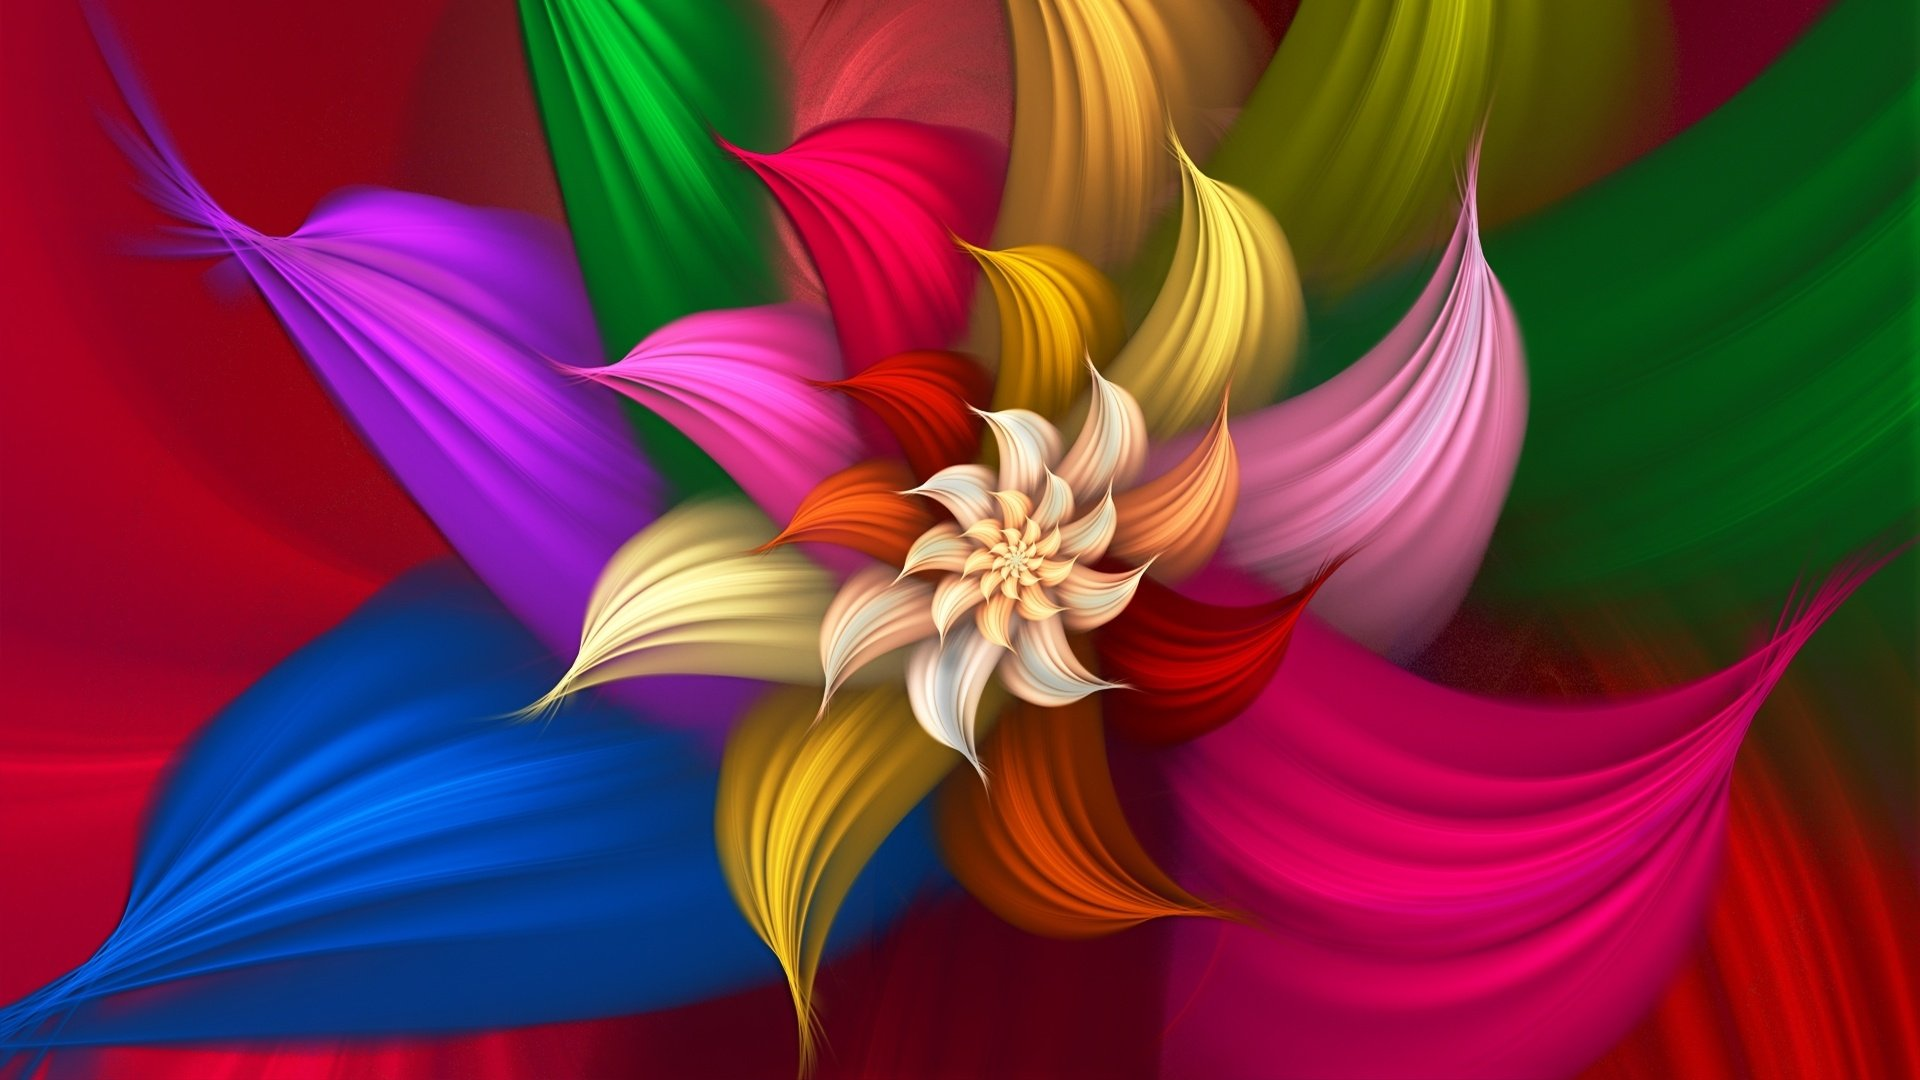 Art Flower Wallpaper.